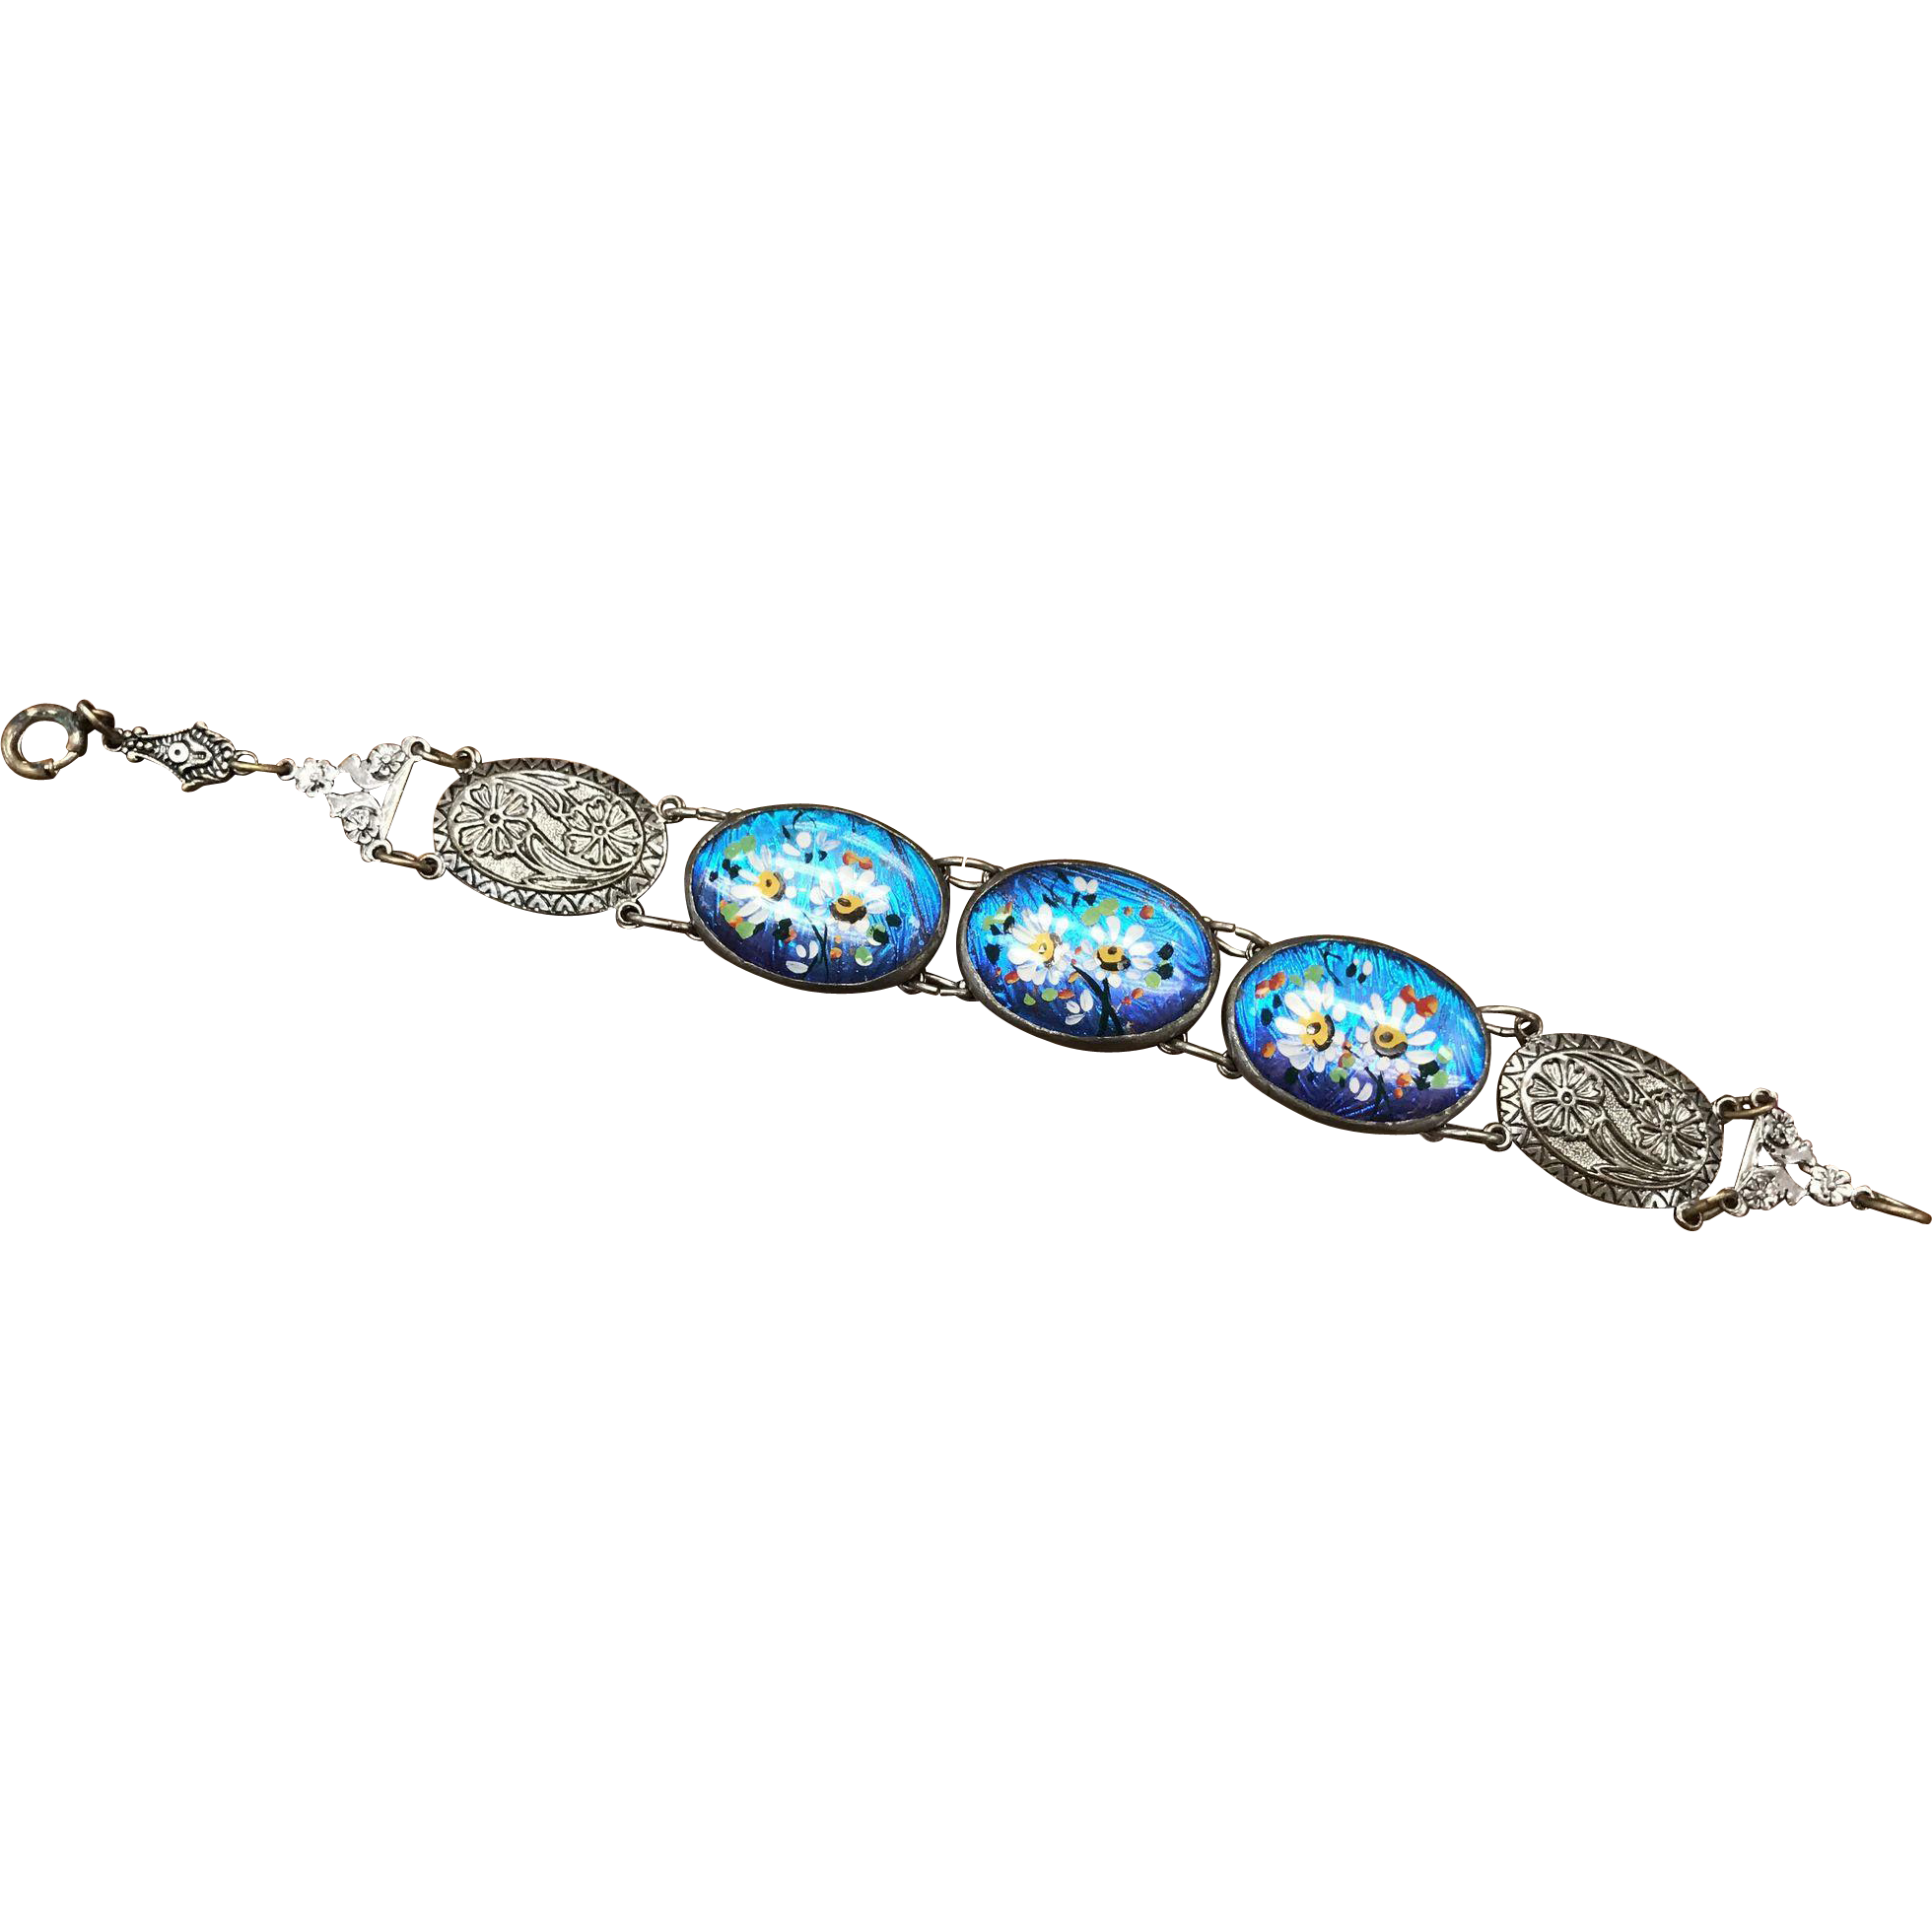 Vintage silver tone link bracelet with hand painted floral decoration on butterfly wings